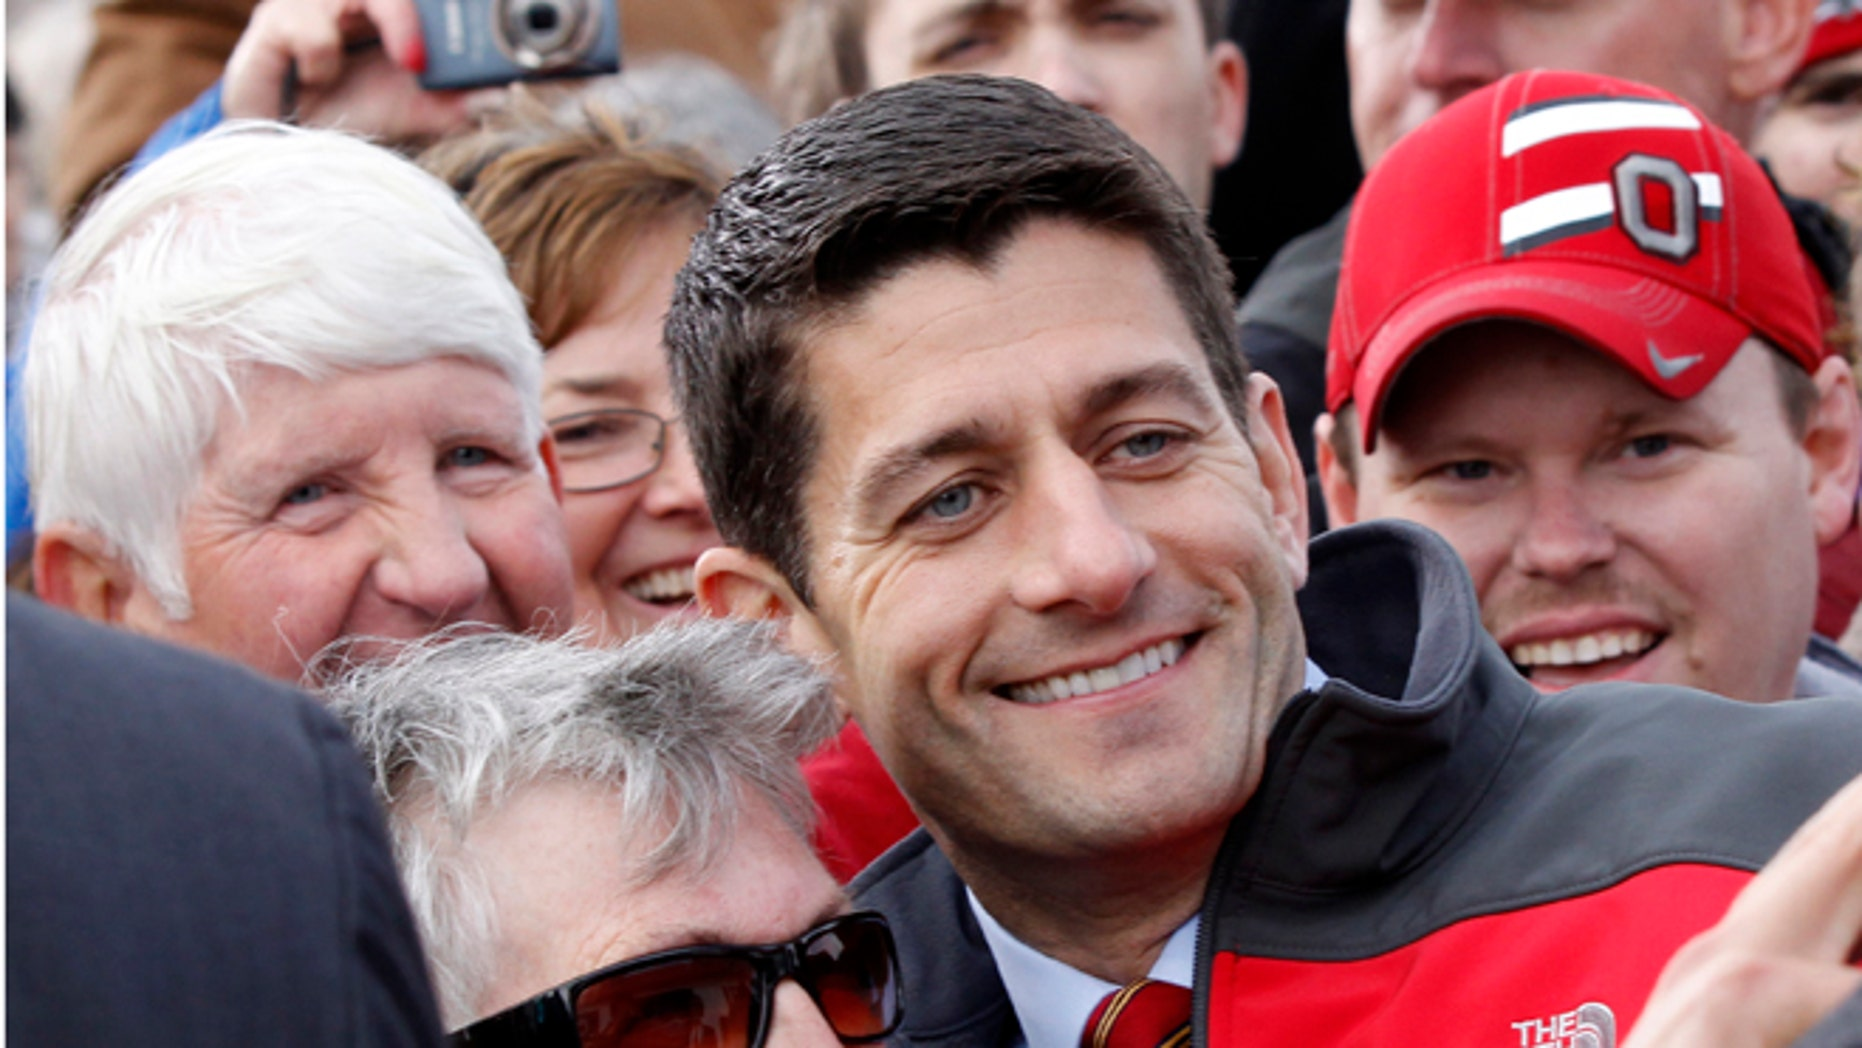 Oct. 20, 2012: Republican vice presidential candidate Rep. Paul Ryan, R-Wis. with supporters after a campaign rally at the Valley View Campgrounds in Belmont, Ohio.